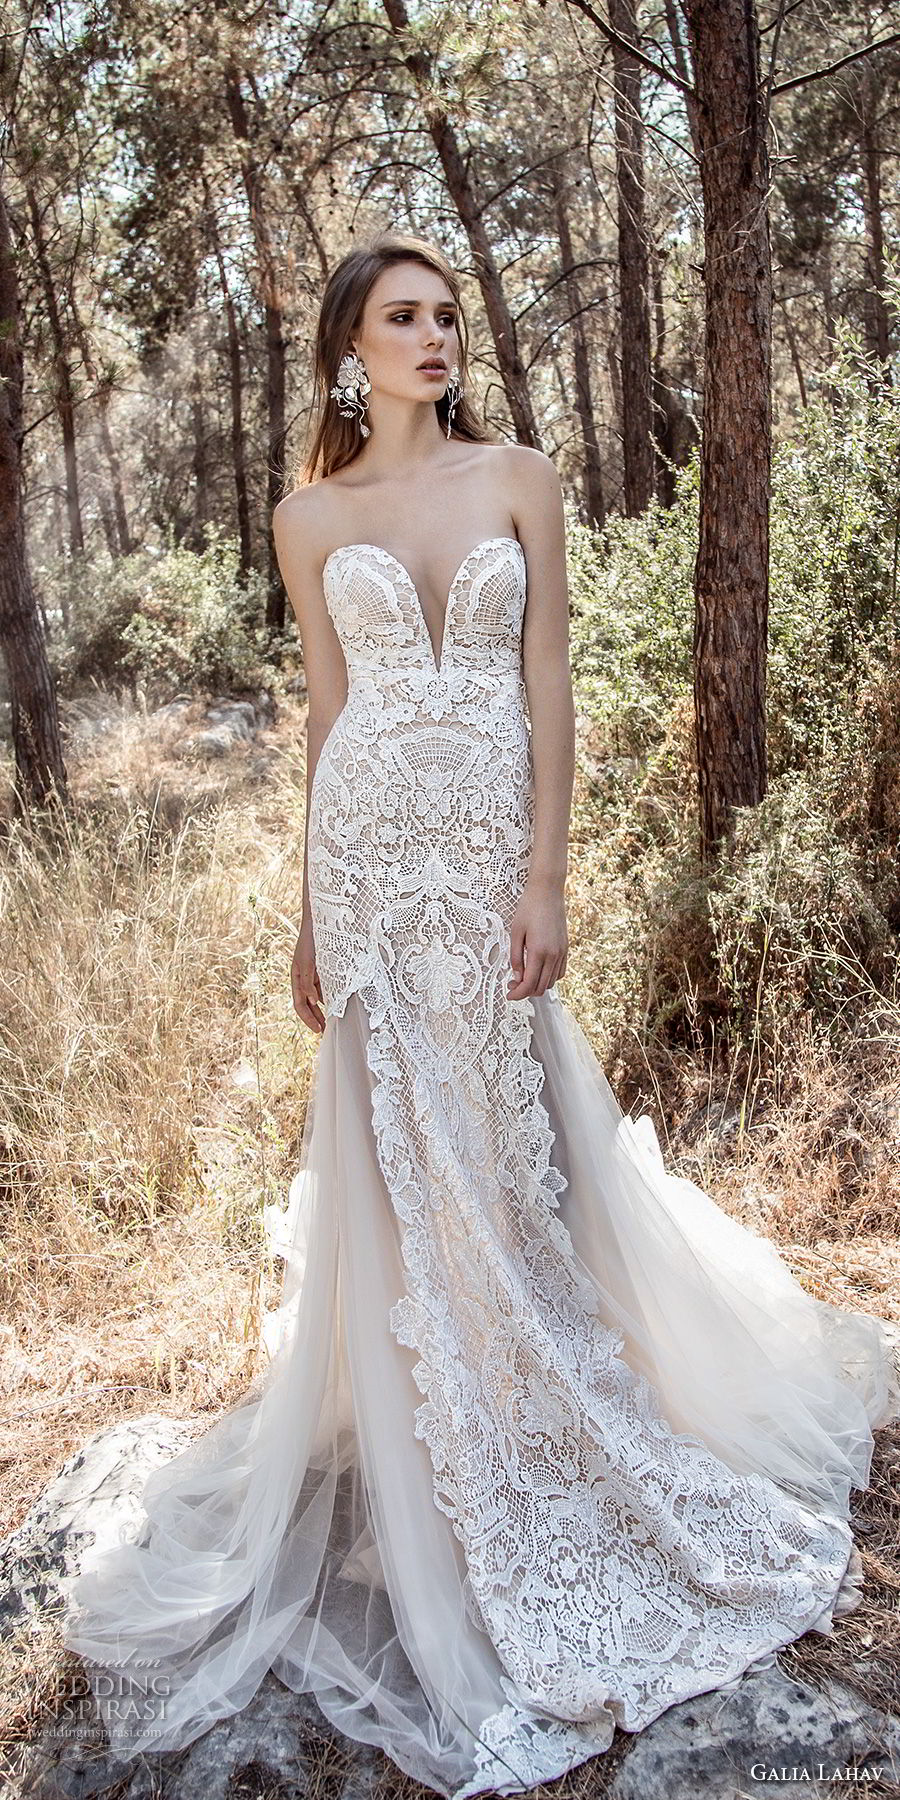 galia lahav gala 4 2018 bridal strapless deep plunging sweetheart neckline full embellishment elegant drop waist a line wedding dress open low back chapel train (912) mv